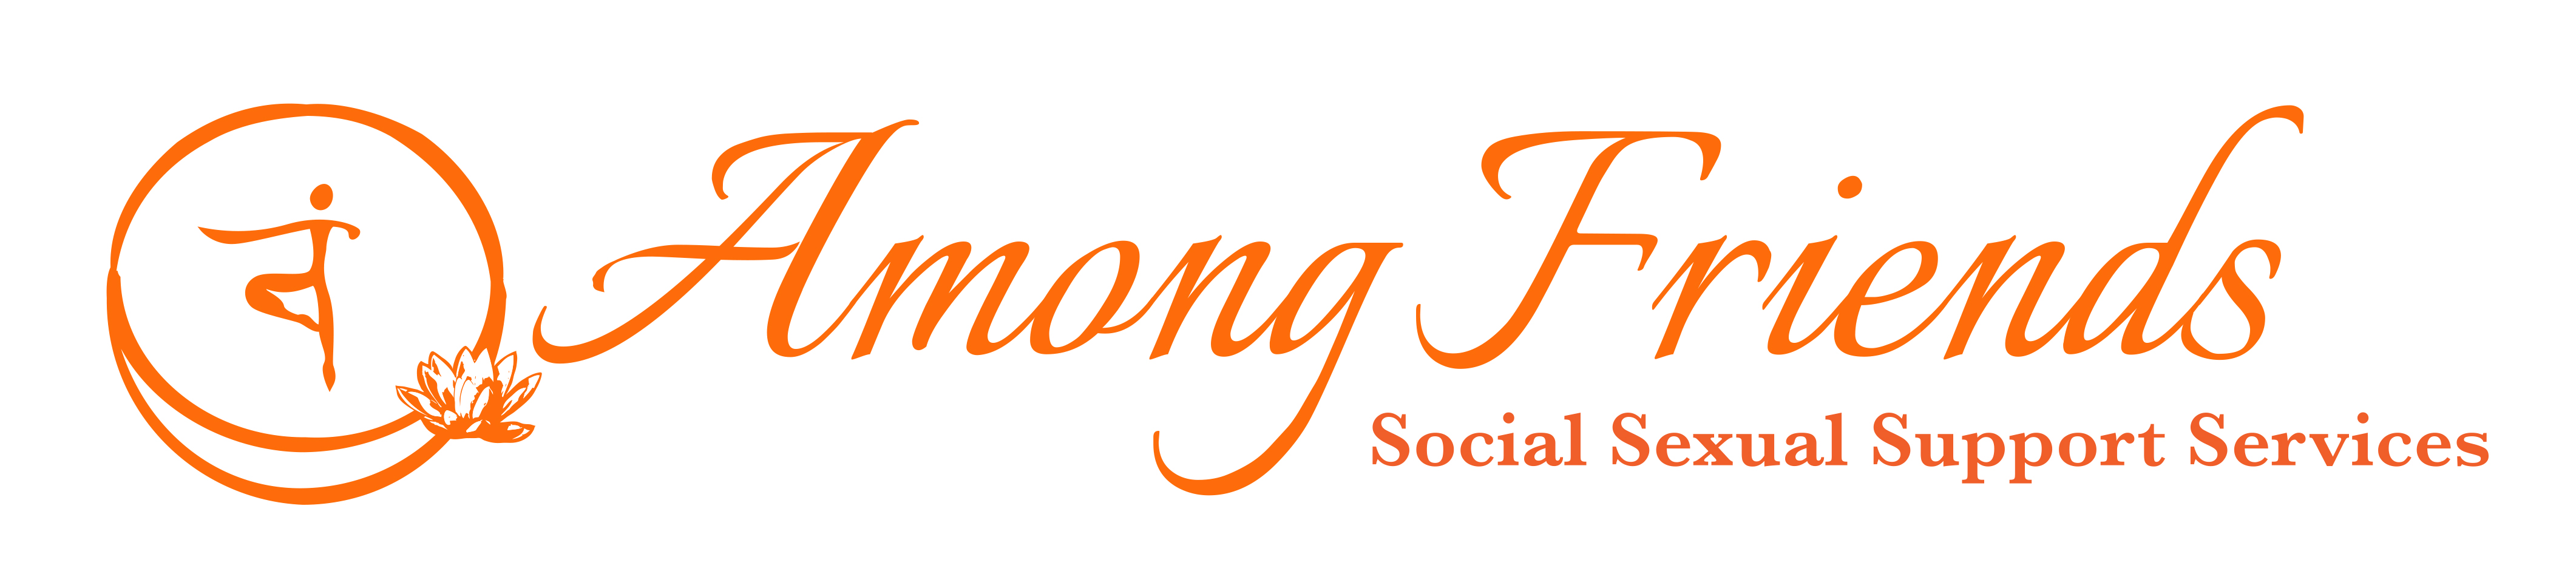 Among Friends - Social-Sexual Support Services in Portland OR